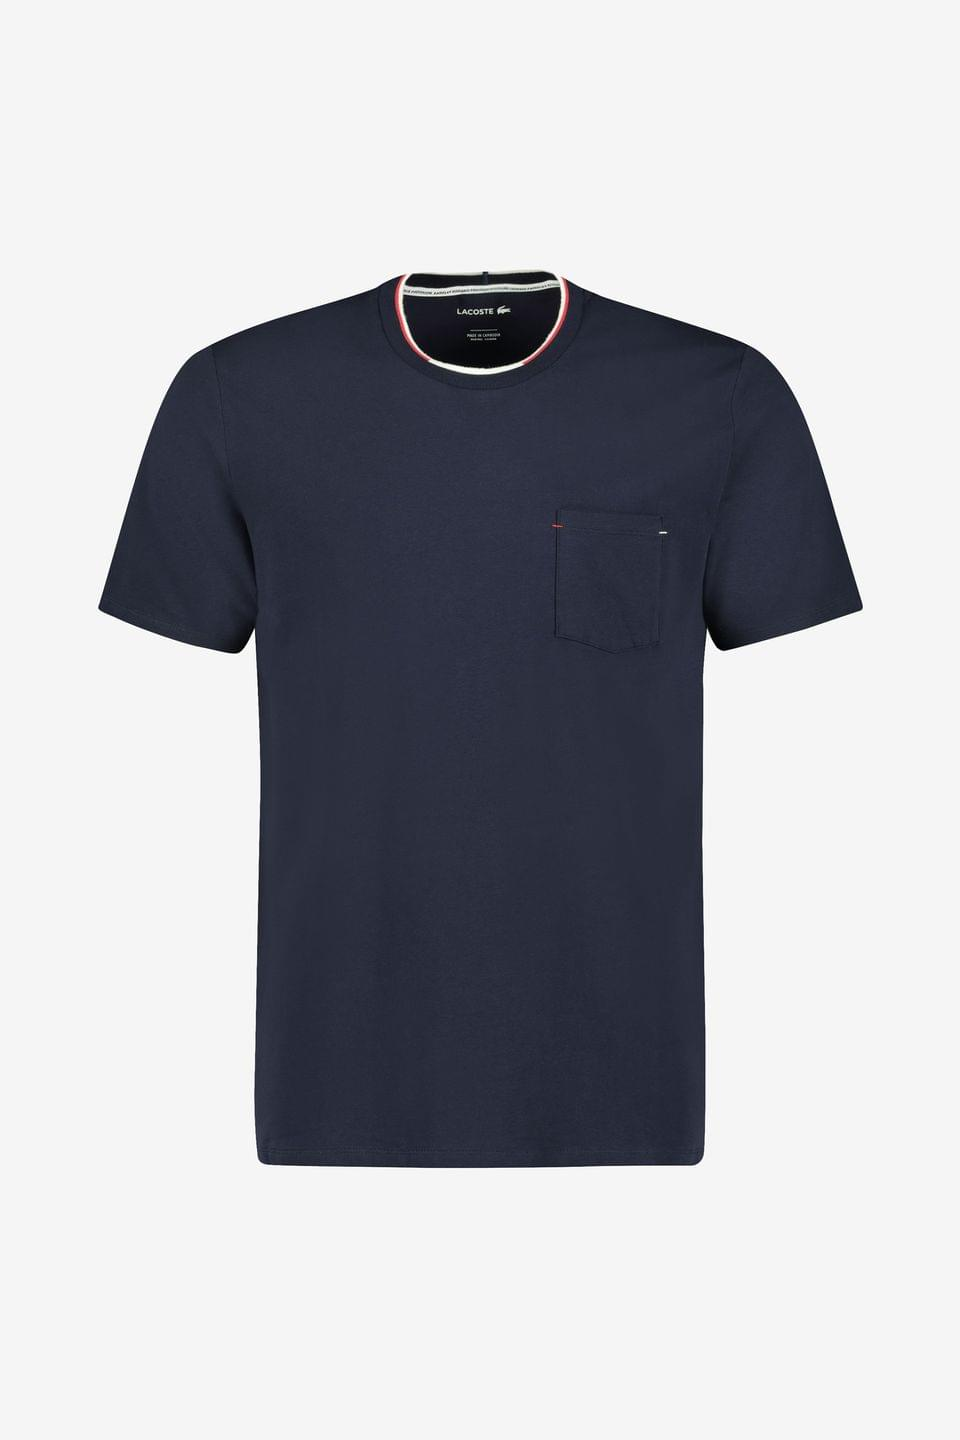 Men's Lacoste Loungewear T-Shirt